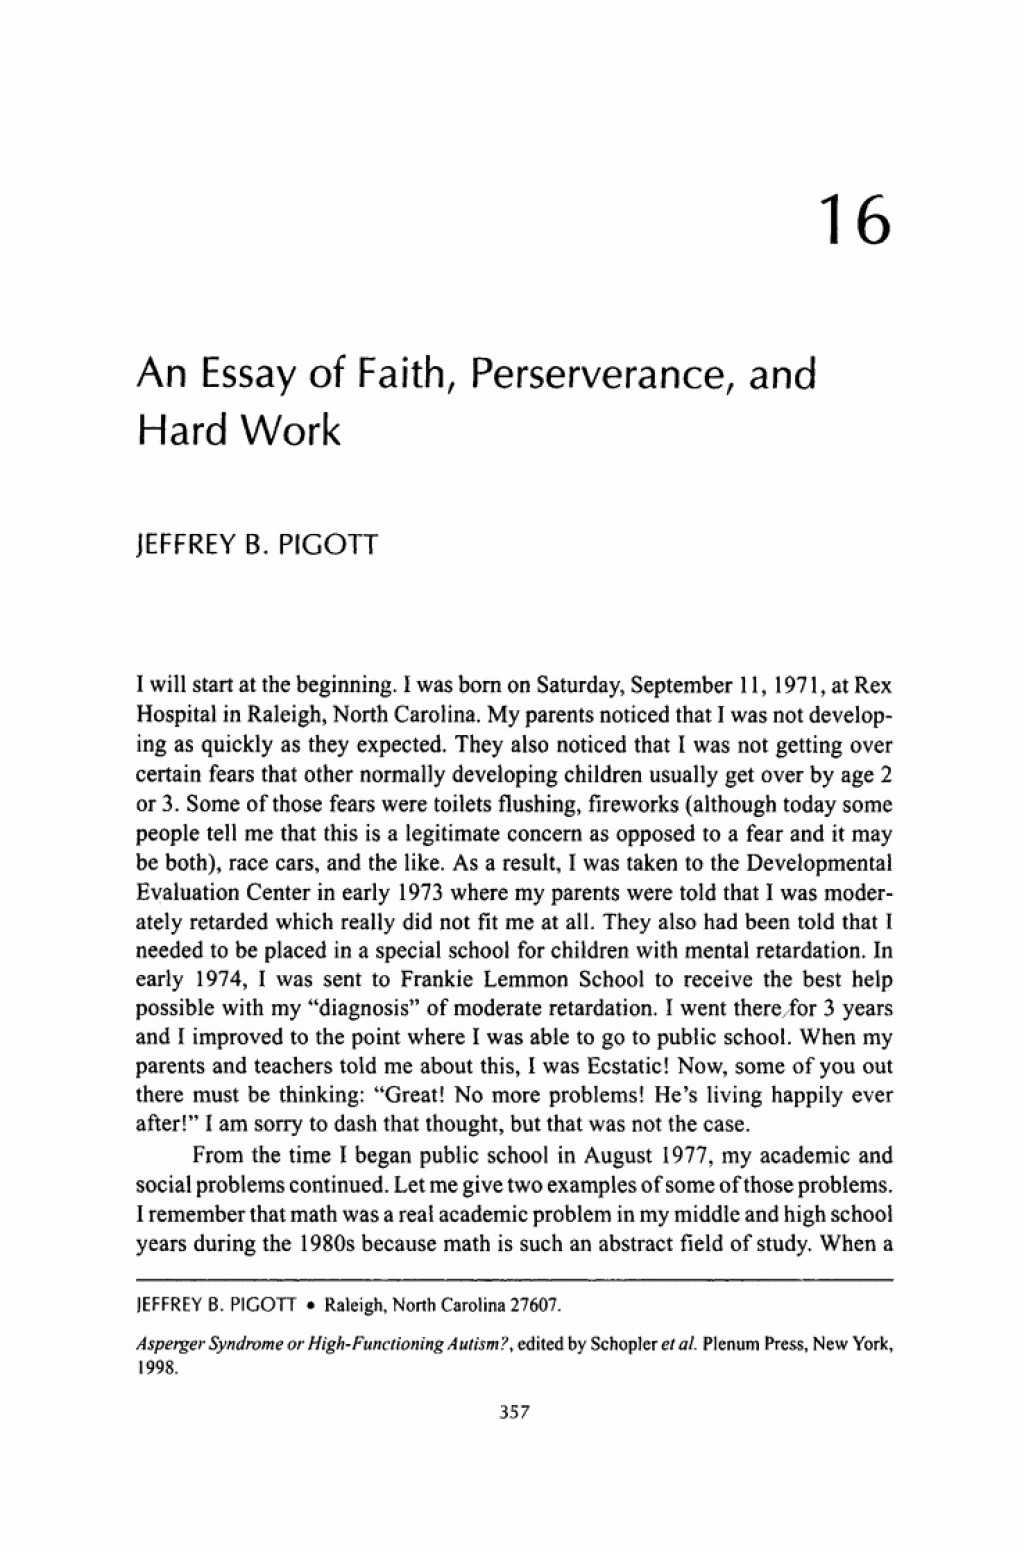 007 Essay Example Hard Work Is The Key To Success Words On In Tamil Not Only Hindi Short Urdu English Wonderful Large